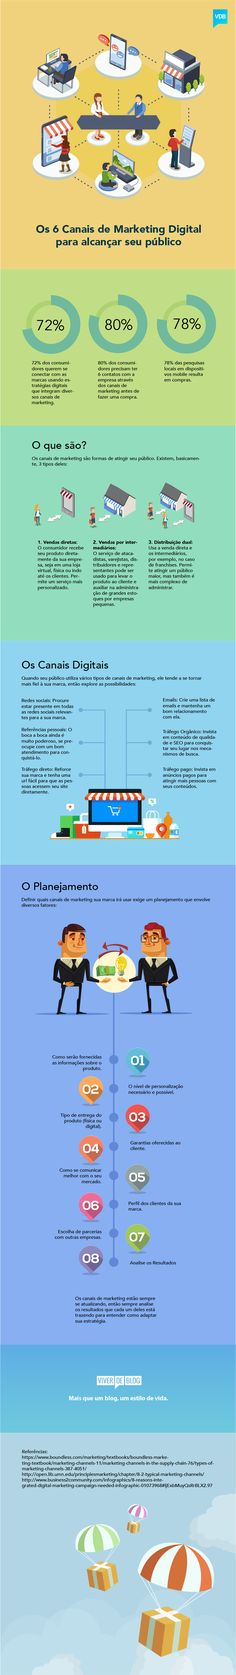 [Infográfico] Os 6 Principais Canais de Marketing Digital